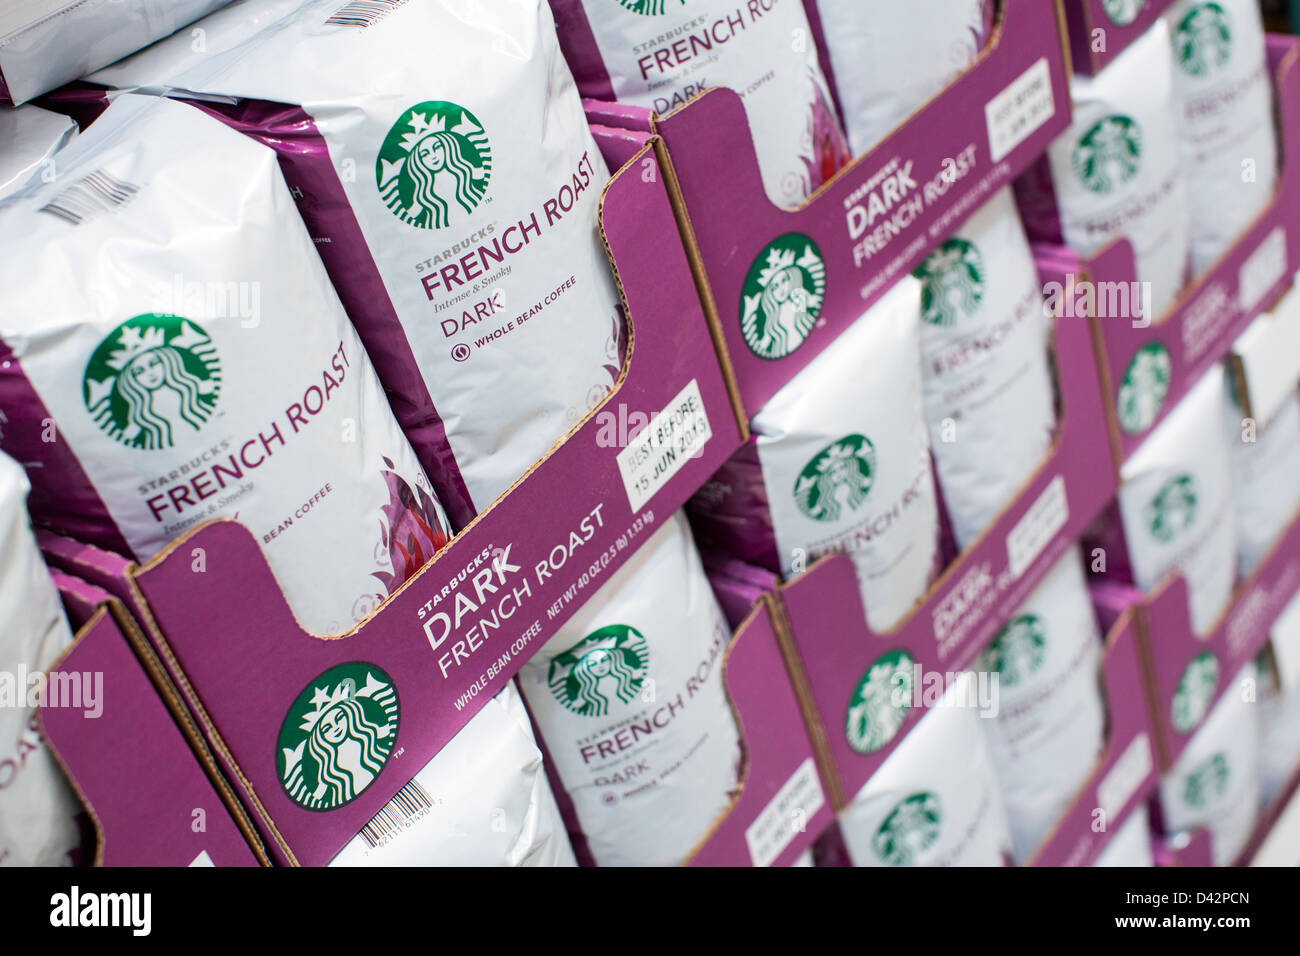 Starbucks packaged coffee on display at a Costco Wholesale Warehouse Club. - Stock Image